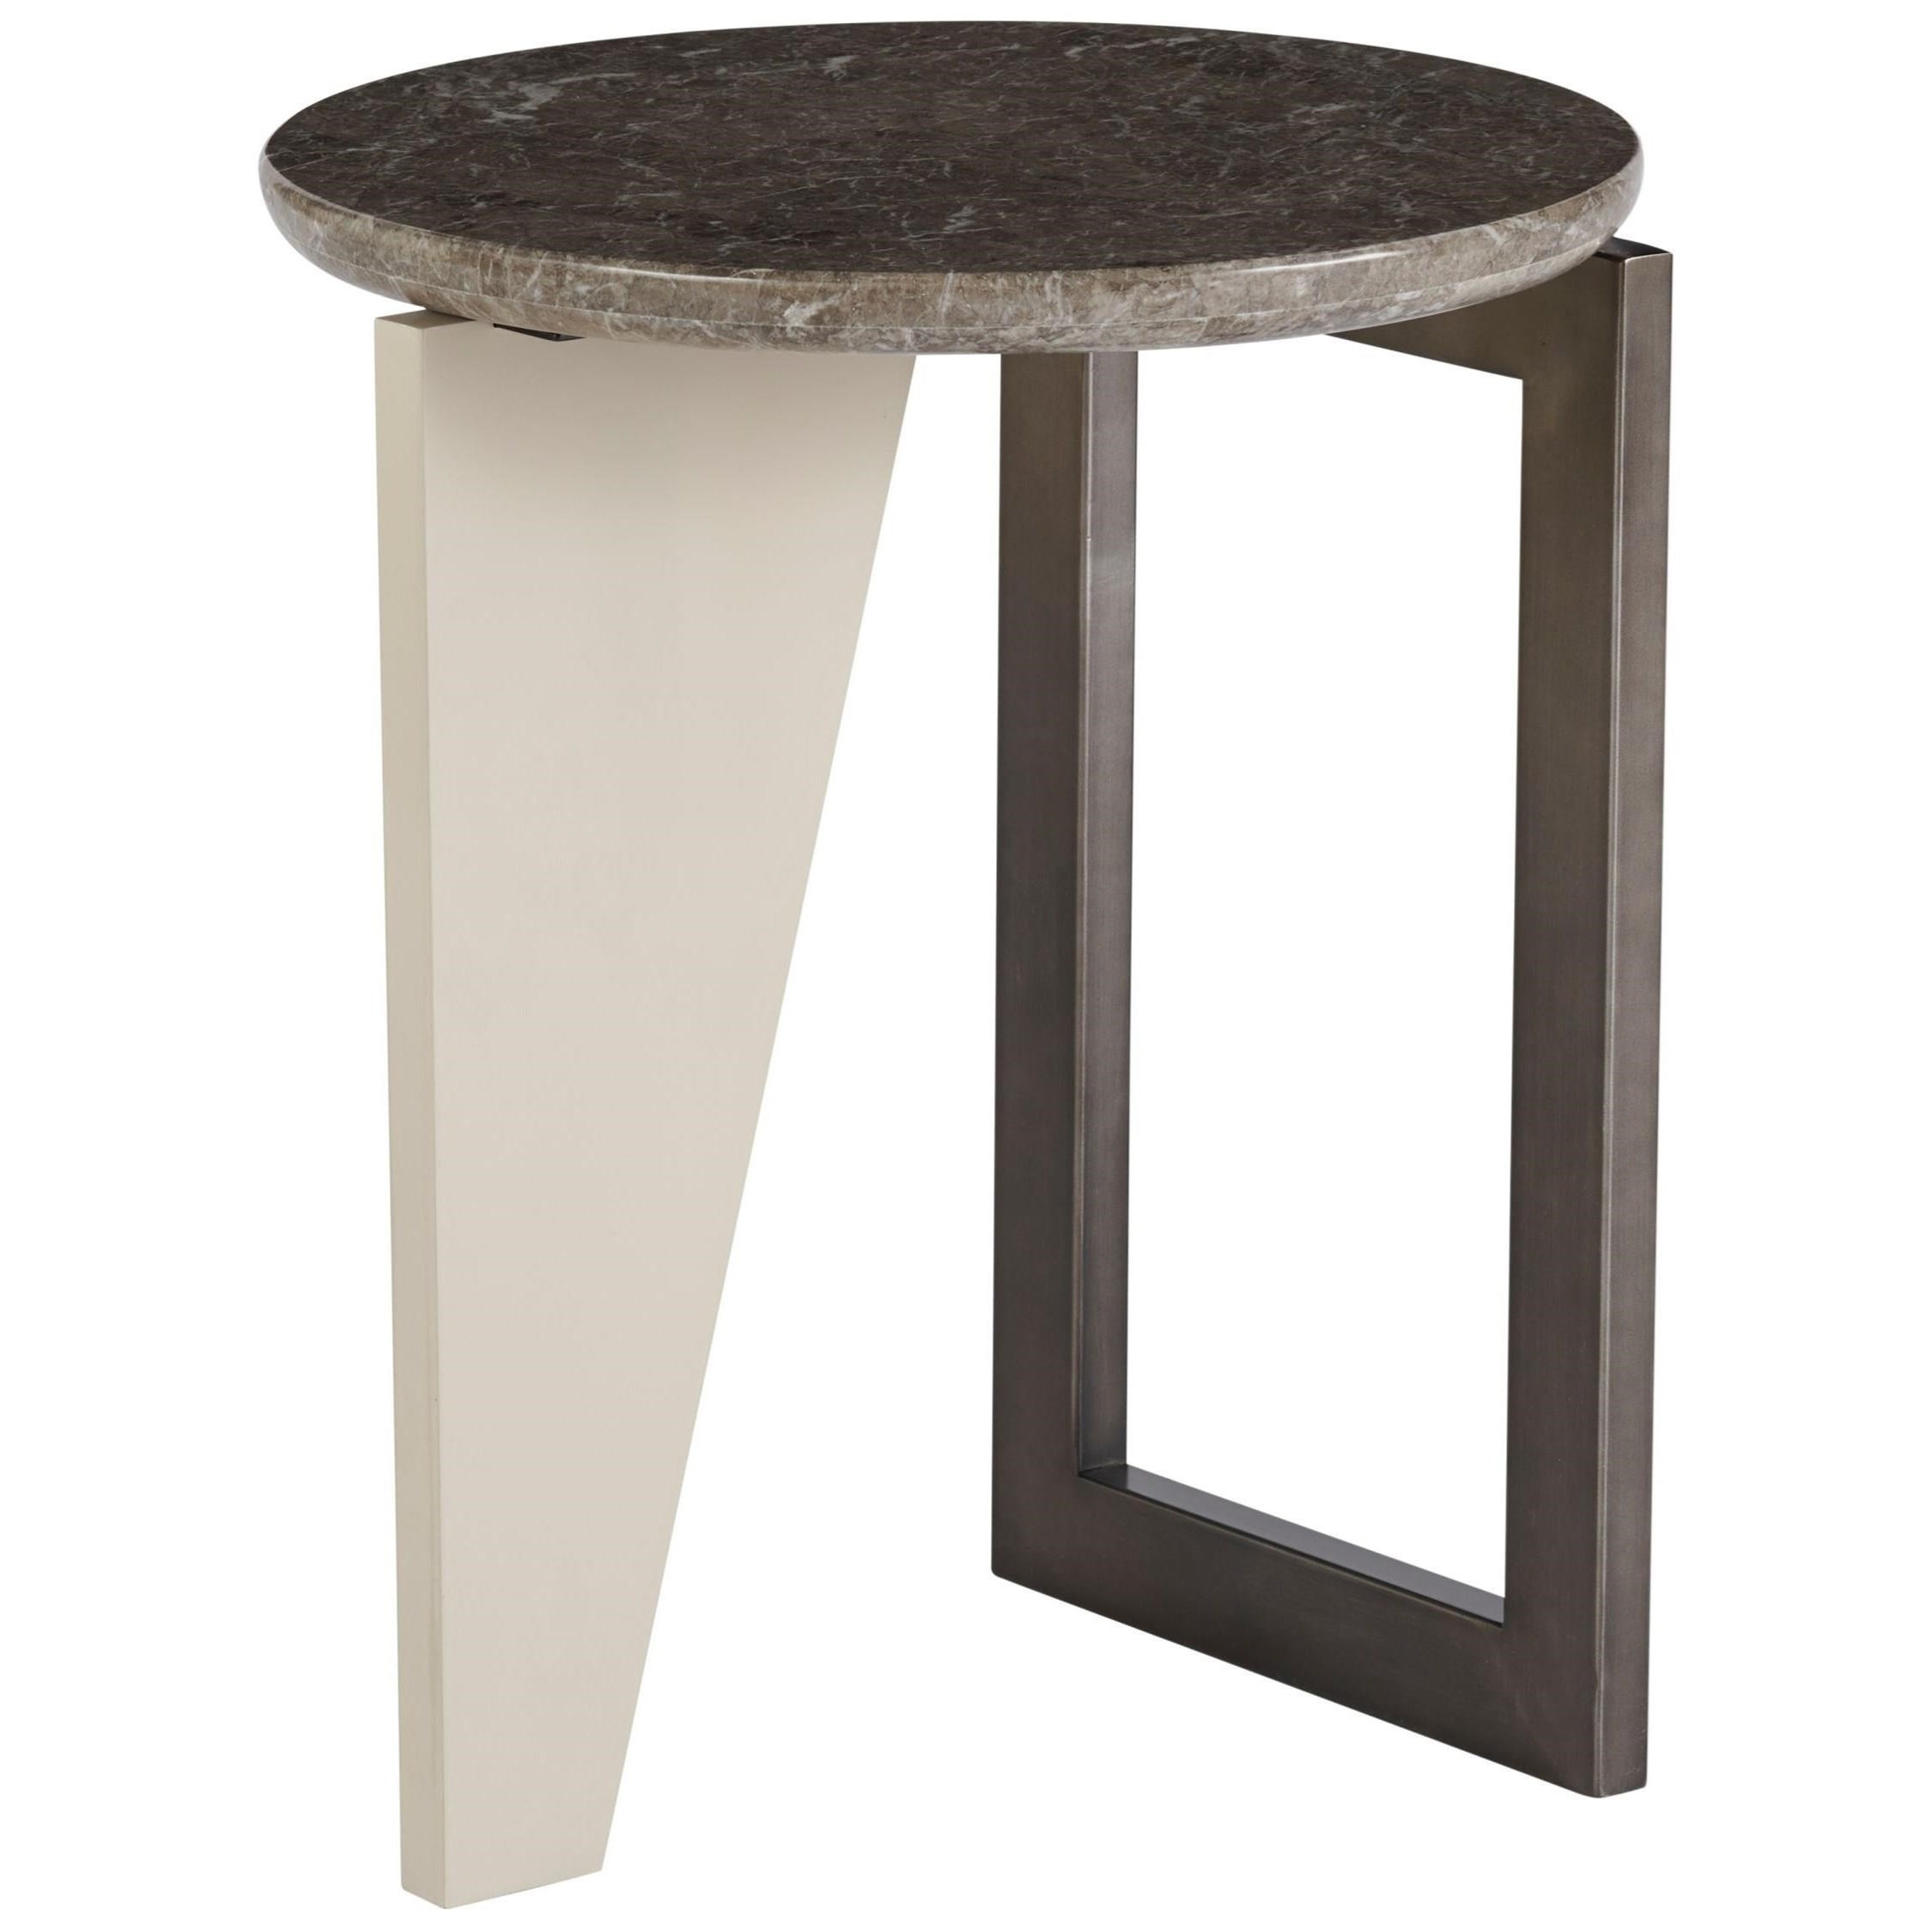 Nina Magon 941 Kline Round End Table by Universal at Zak's Home